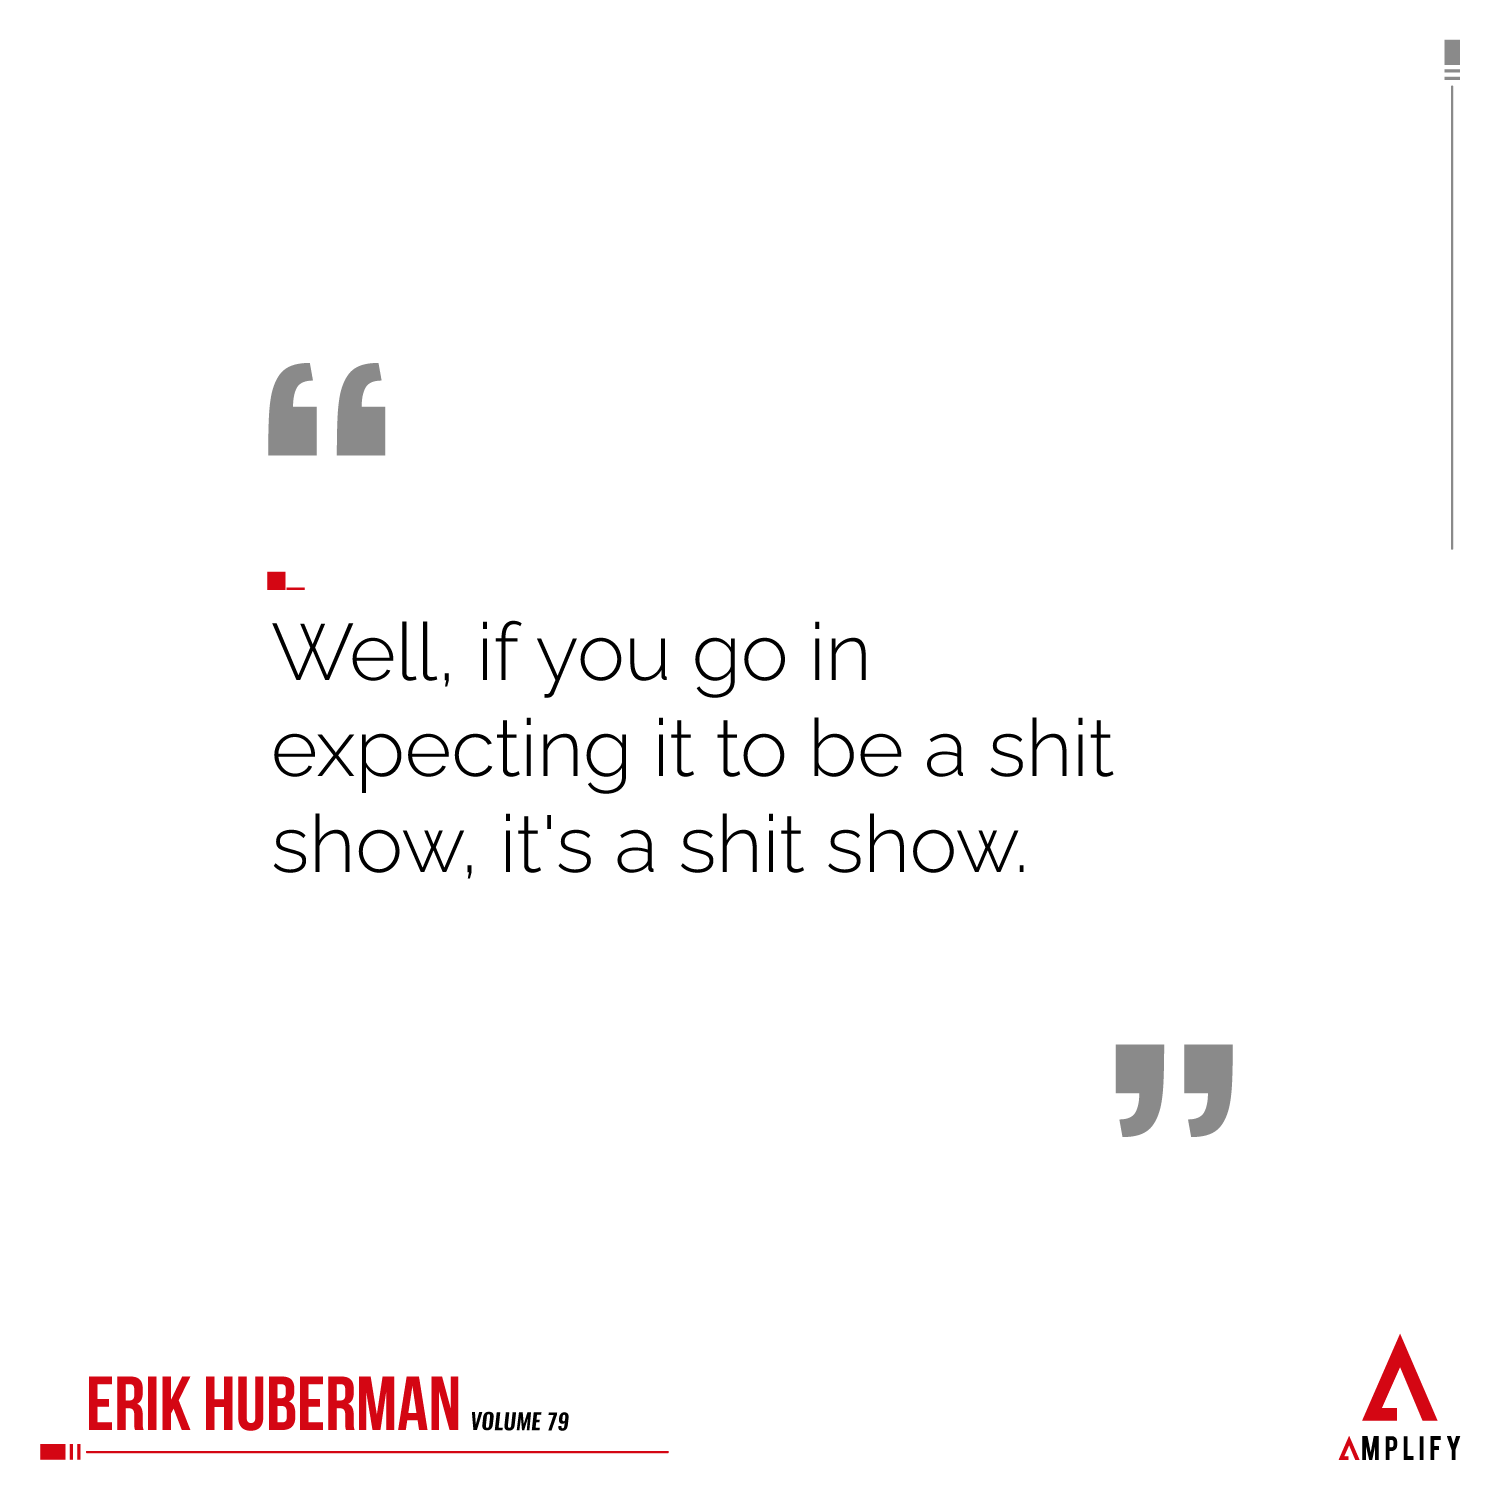 """decorative image with the quote """"Well, if you go in expecting it to be a shit show, it's a shit show."""" by Erik Huberman"""